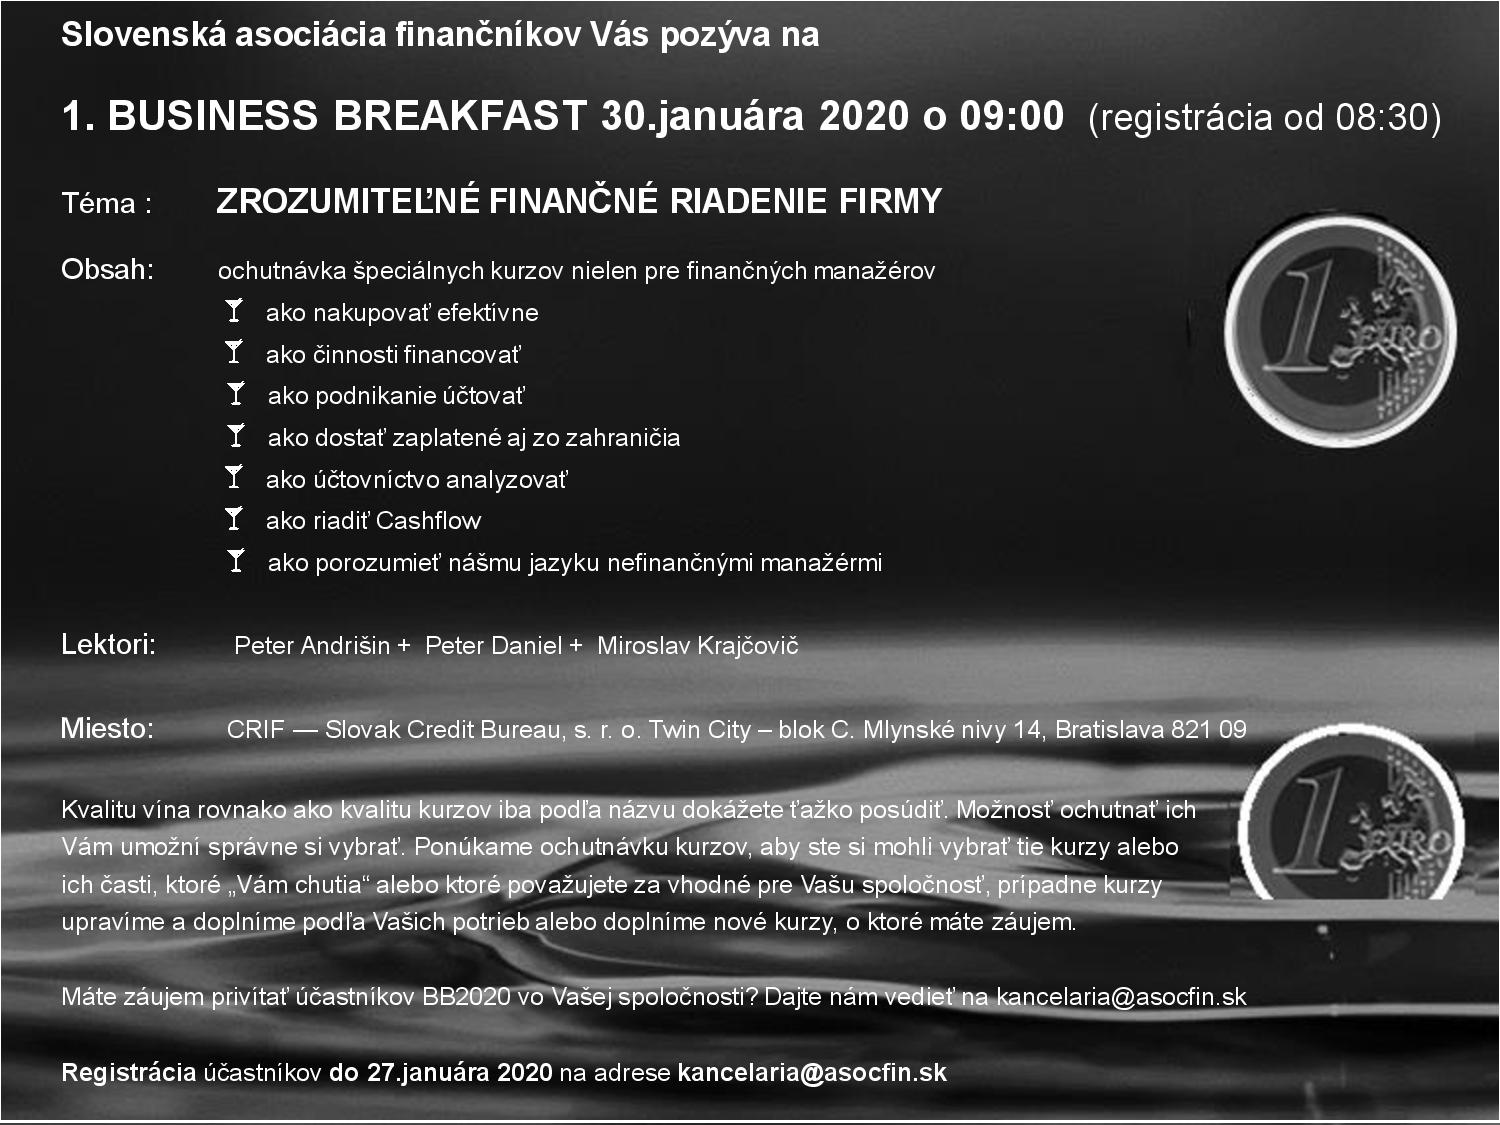 1. Business Breakfast SAF 30.01.2020